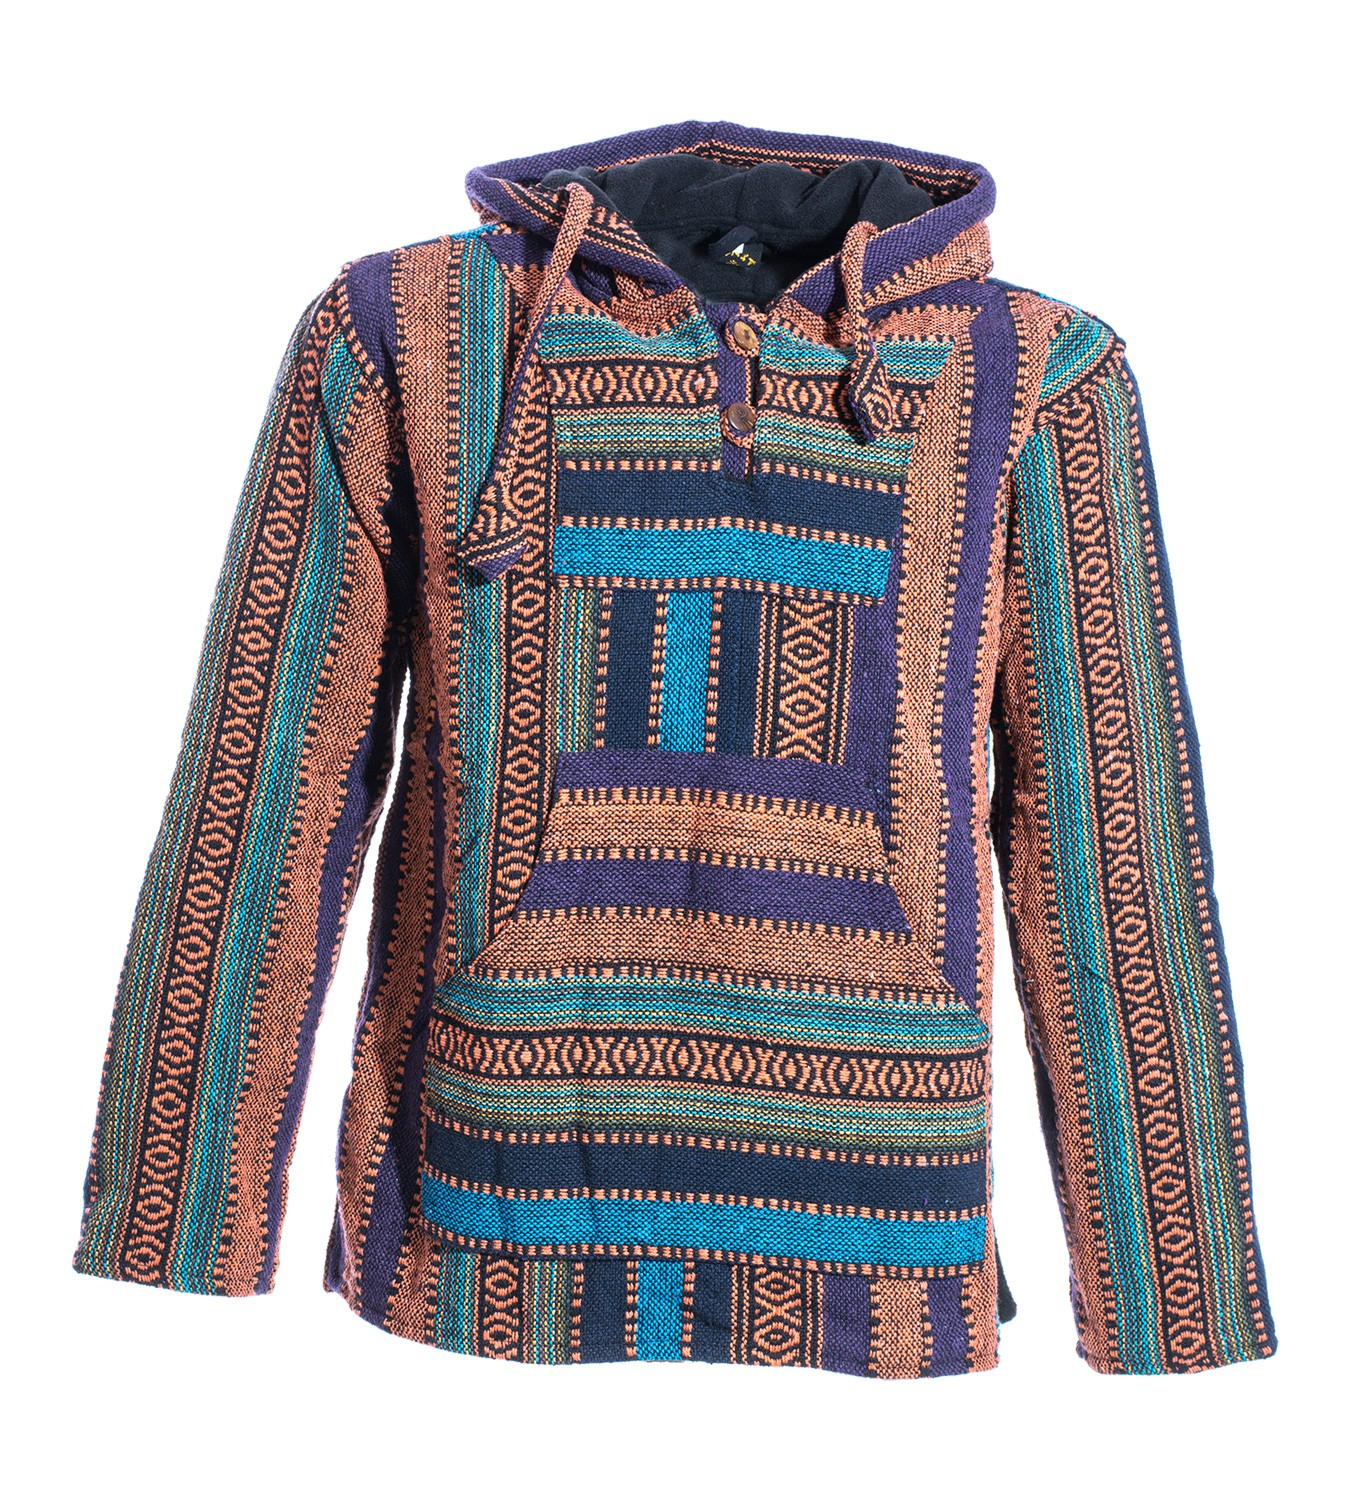 Kunst Und Magie Nepal Baja Jerga Sweatshirt Poncho Brown orange XL. About  this product. Picture 1 of 2  Picture 2 of 2 11655e1ca5